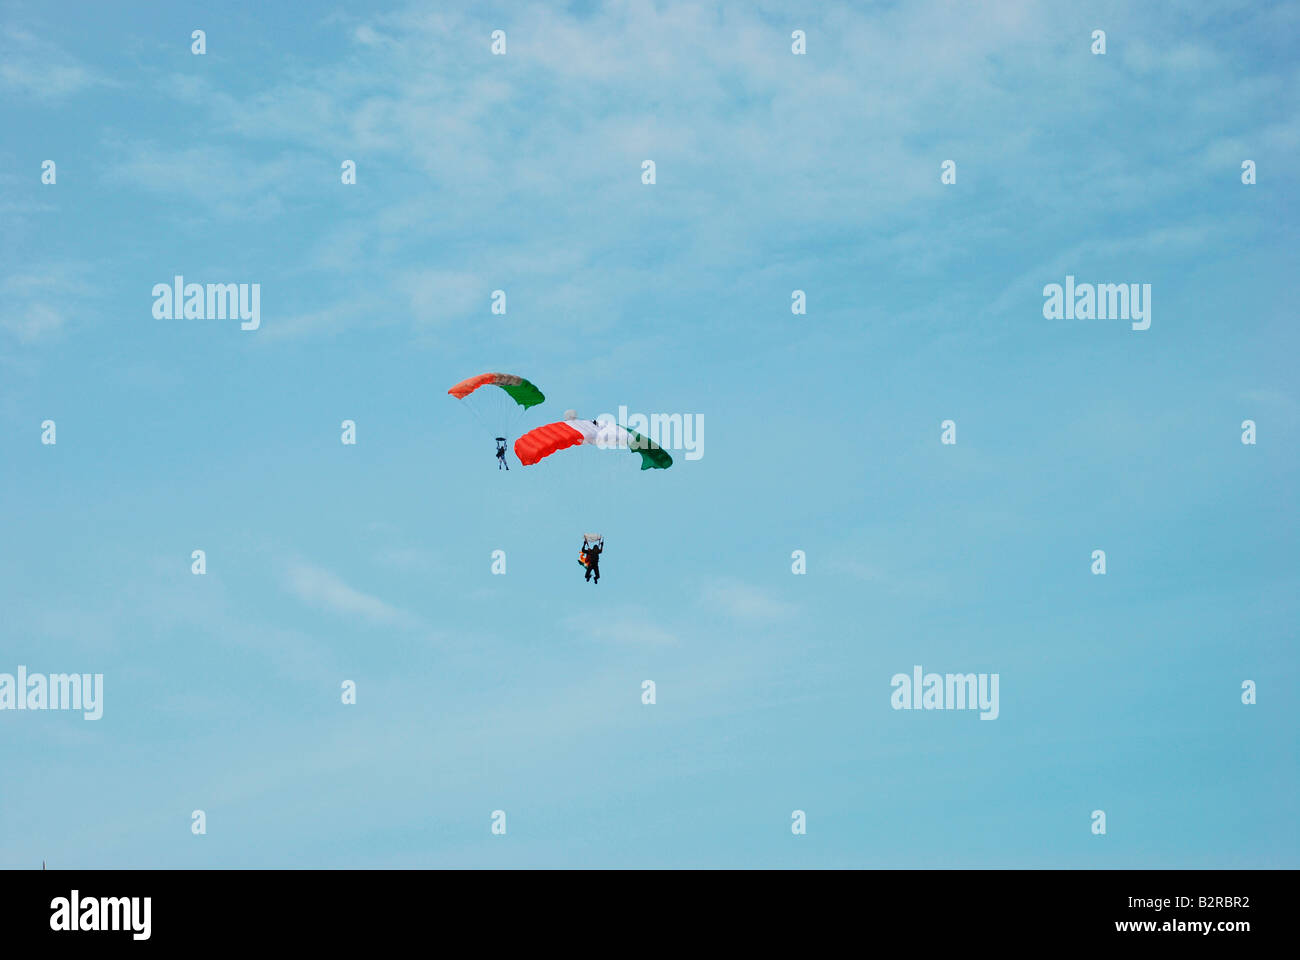 Indian paratroopers in the sky - Stock Image